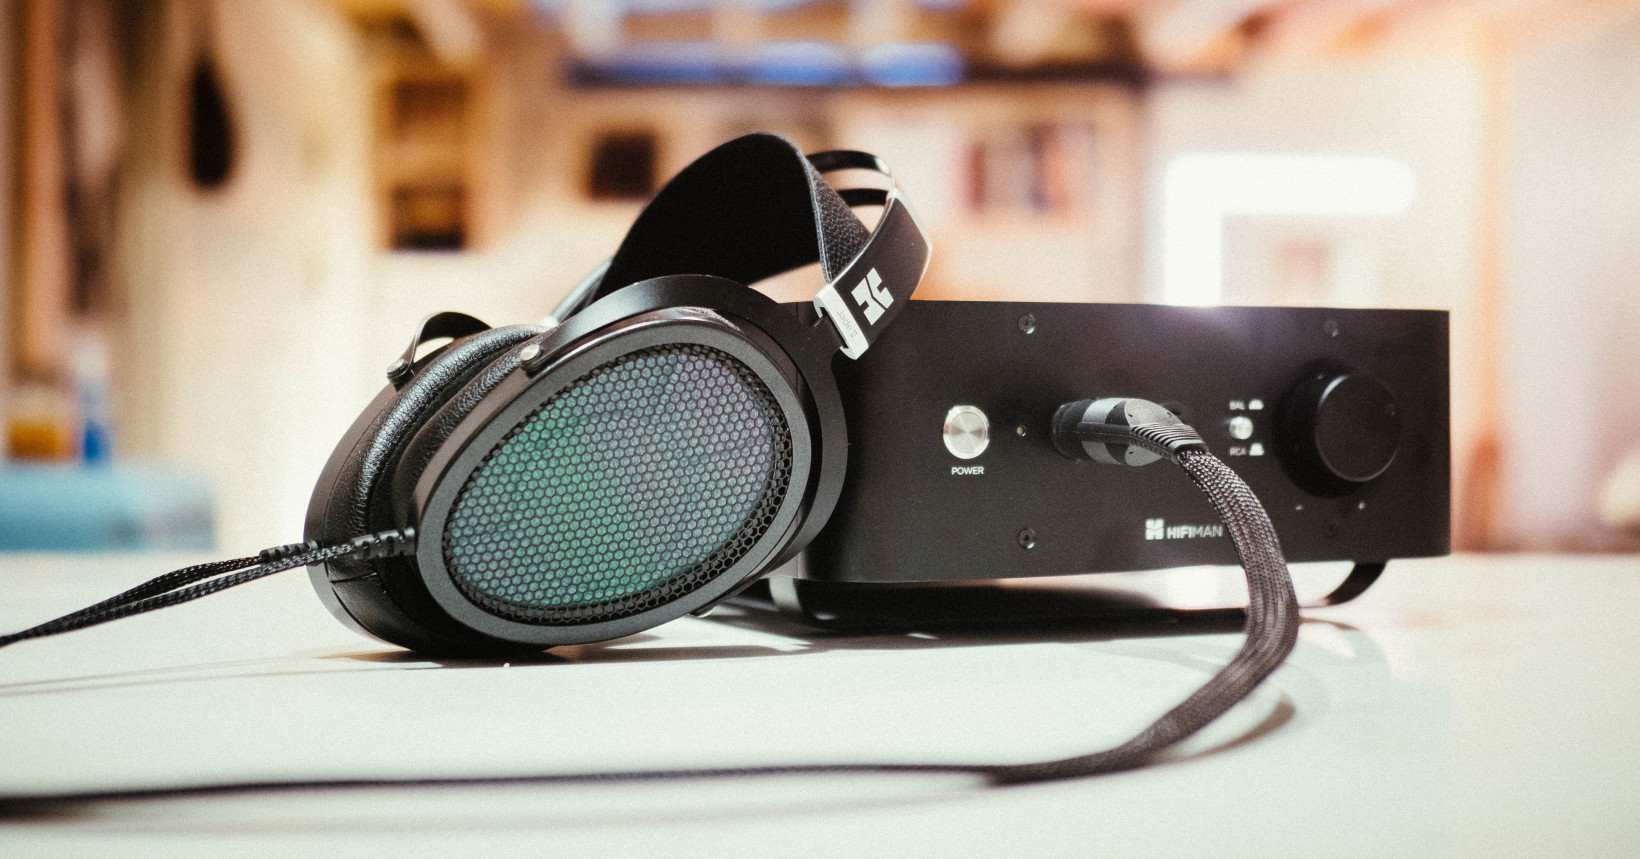 Hifiman Jade II Review: This $2,500 headphone sacrifices portability for supreme detail